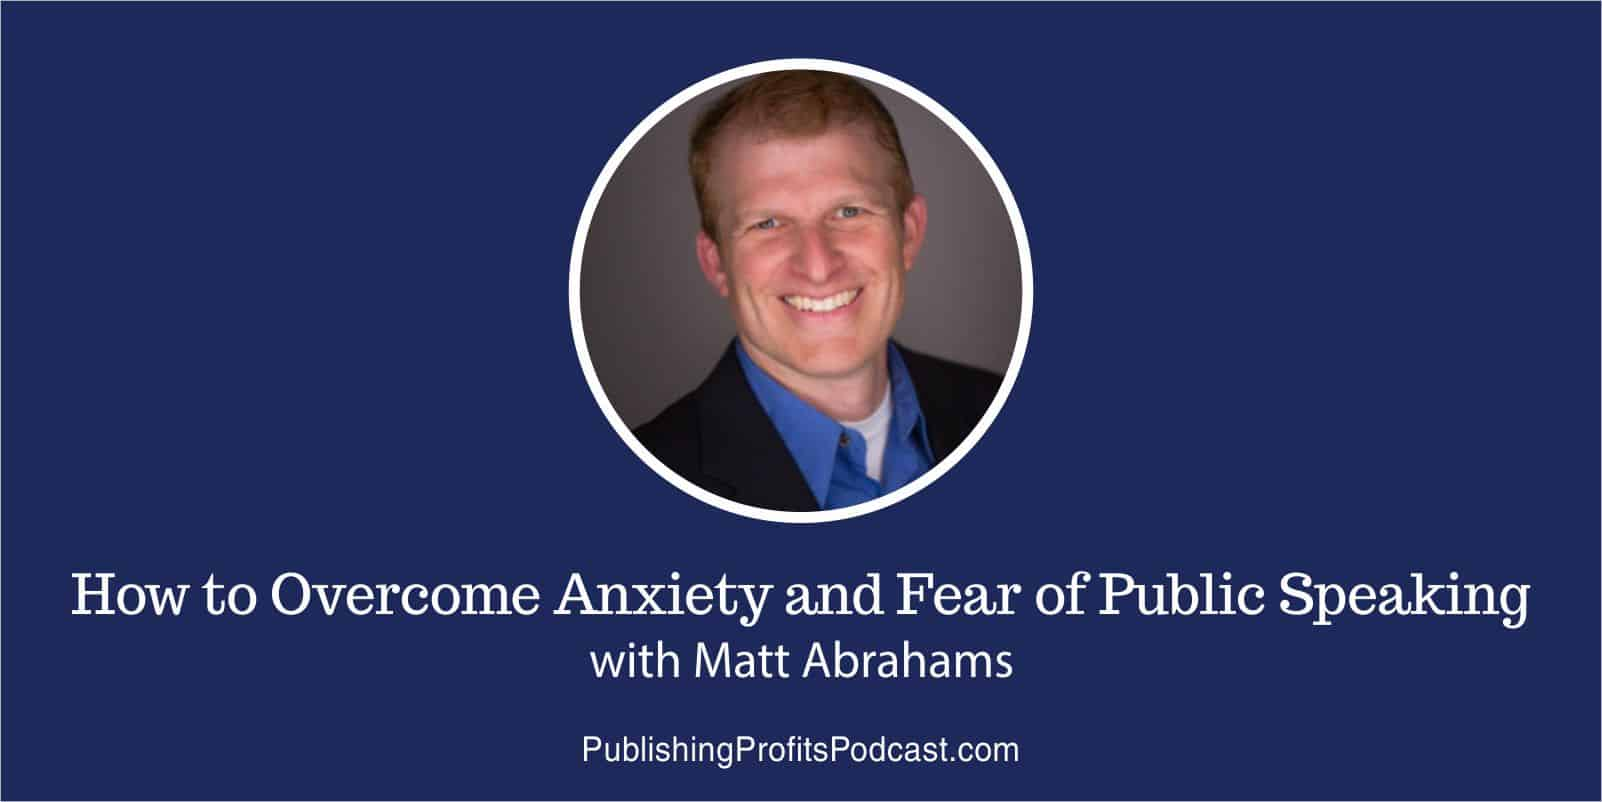 How to Overcome Anxiety Matt Abrahams